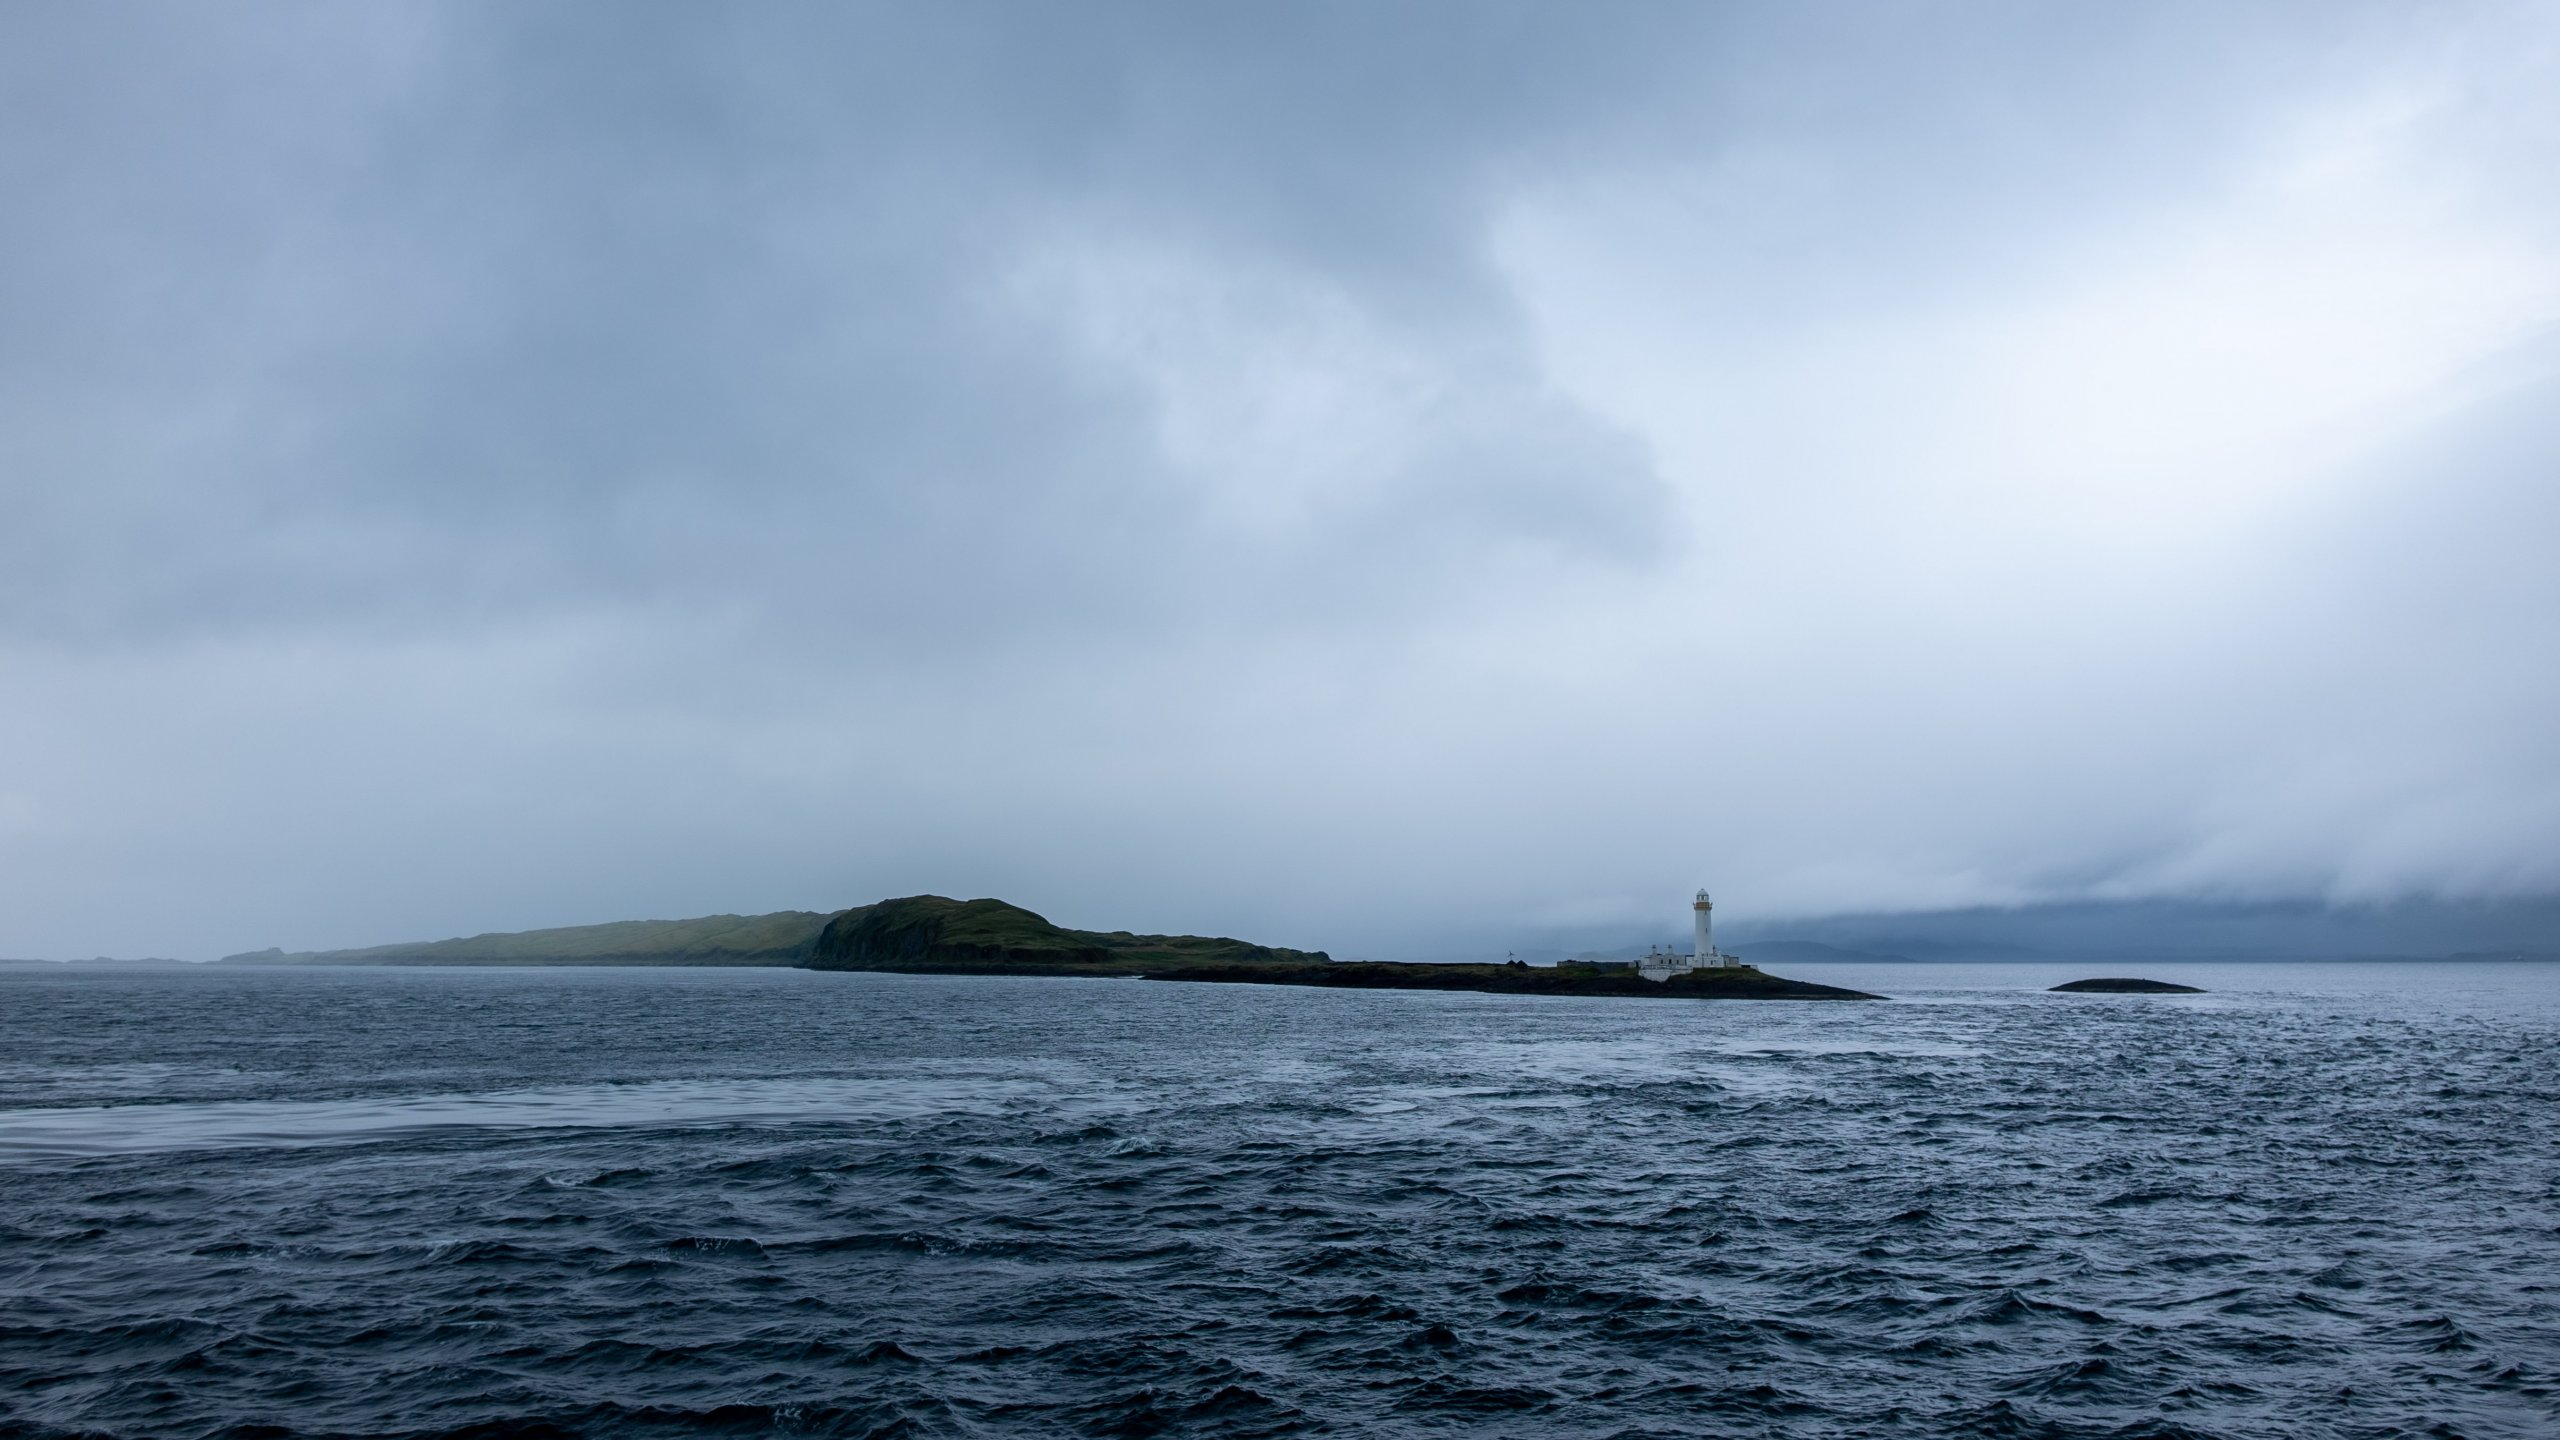 lighthouse and small island in distance on grey, overcast day with choppy seas